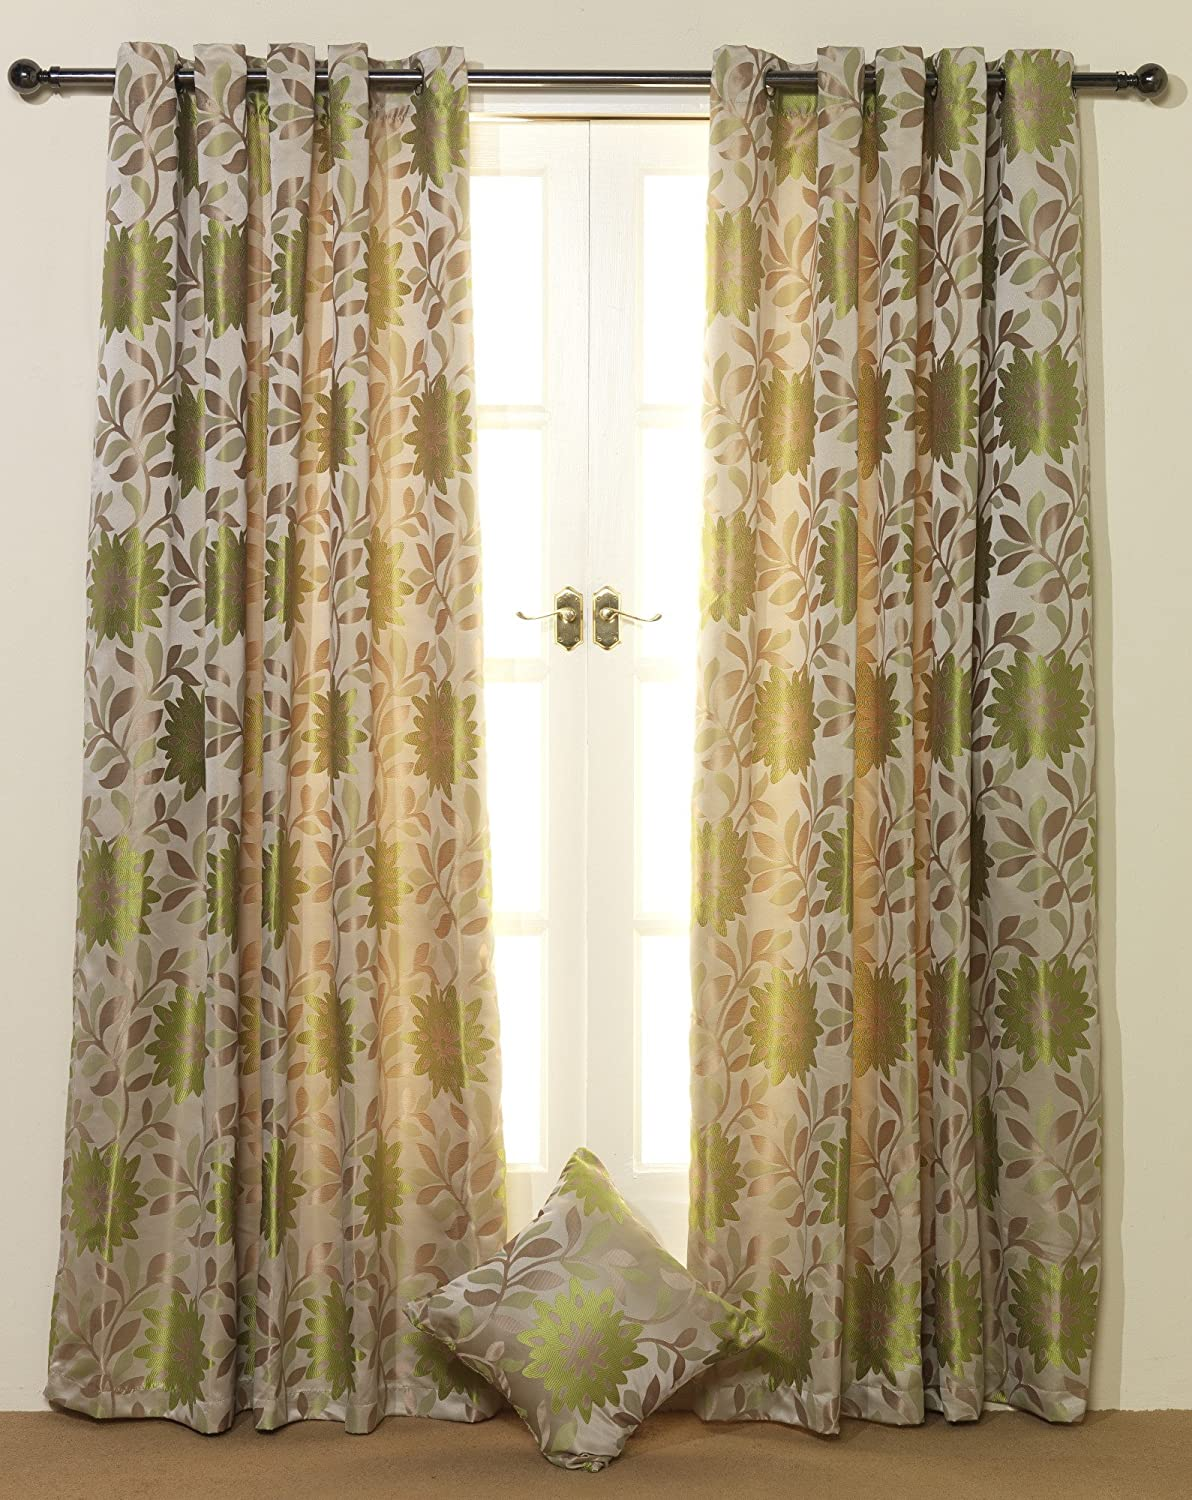 Lime Green Curtains 108 Drop Curtain Menzilperde Net